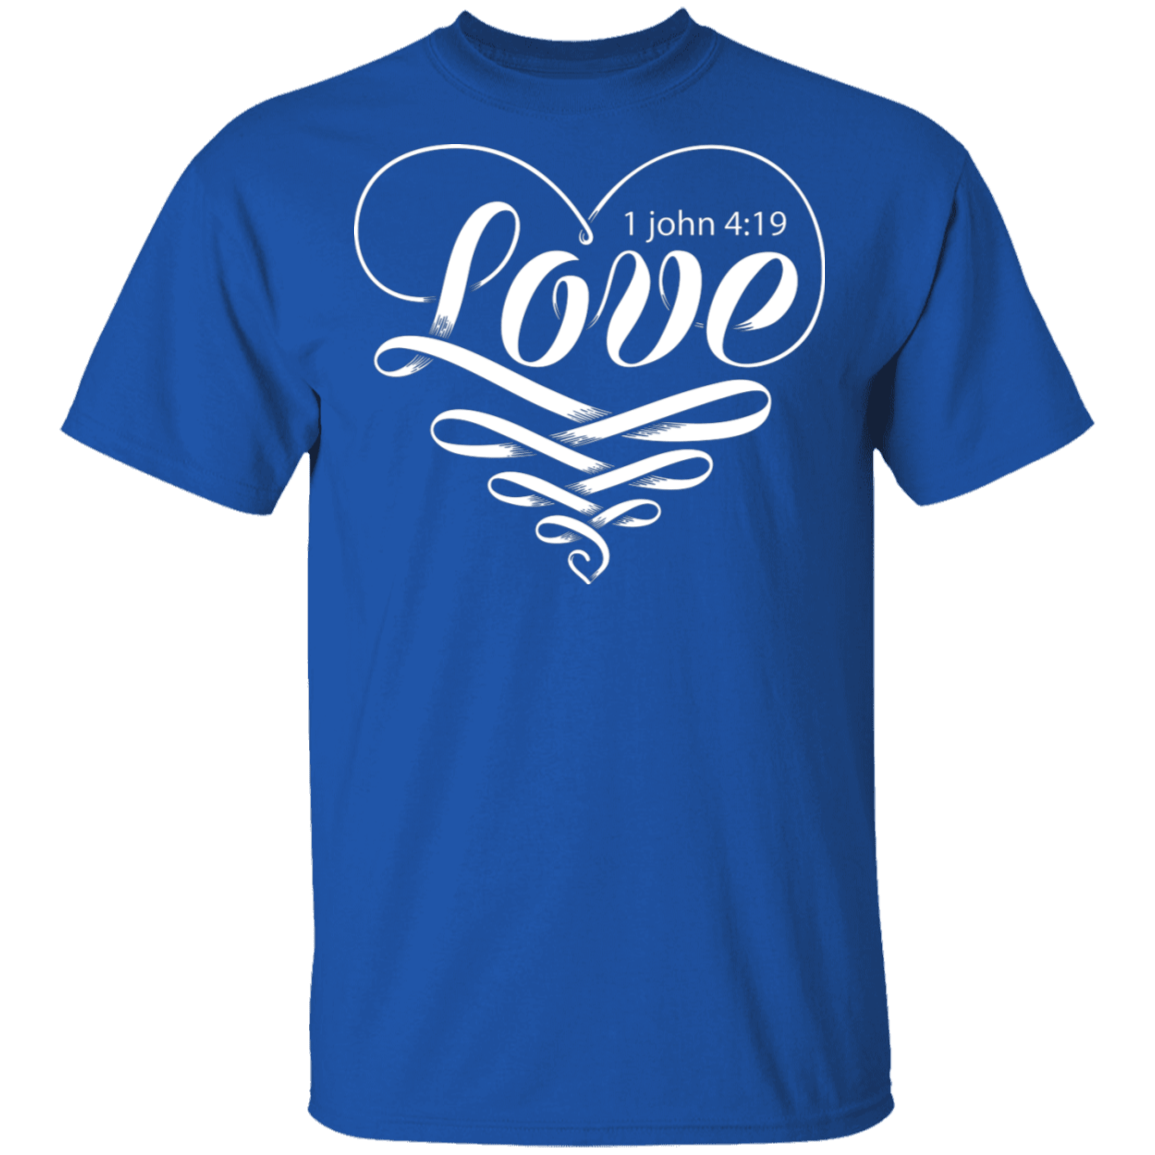 Love - John 4:19 - T-Shirt - My Christian Shop